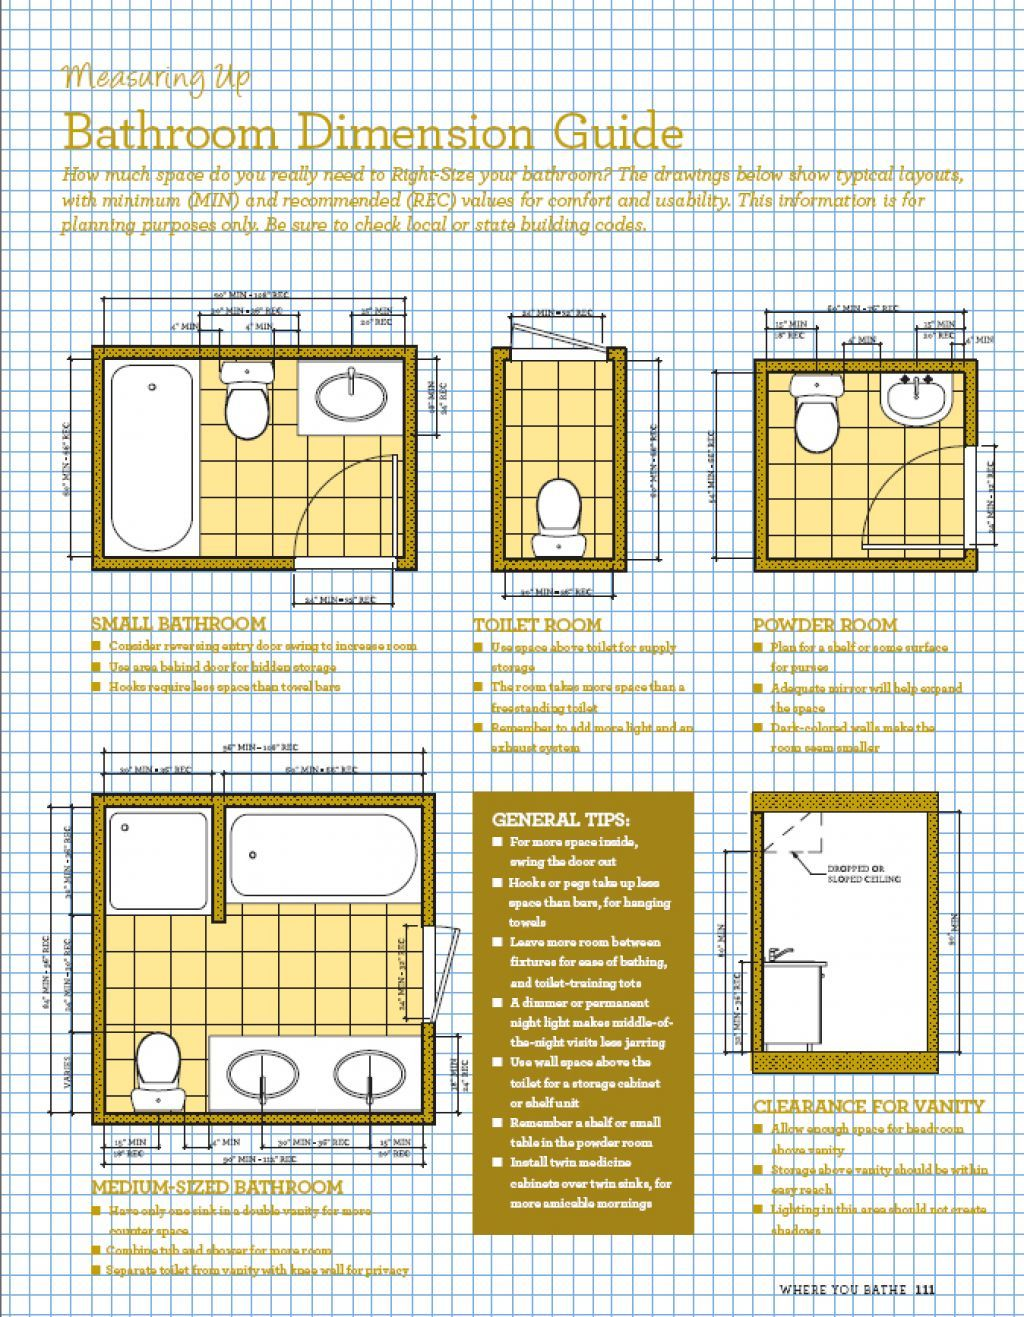 Small Bathroom Design Guide bathroom , key to get bathroom dimension guide : bath dimensions